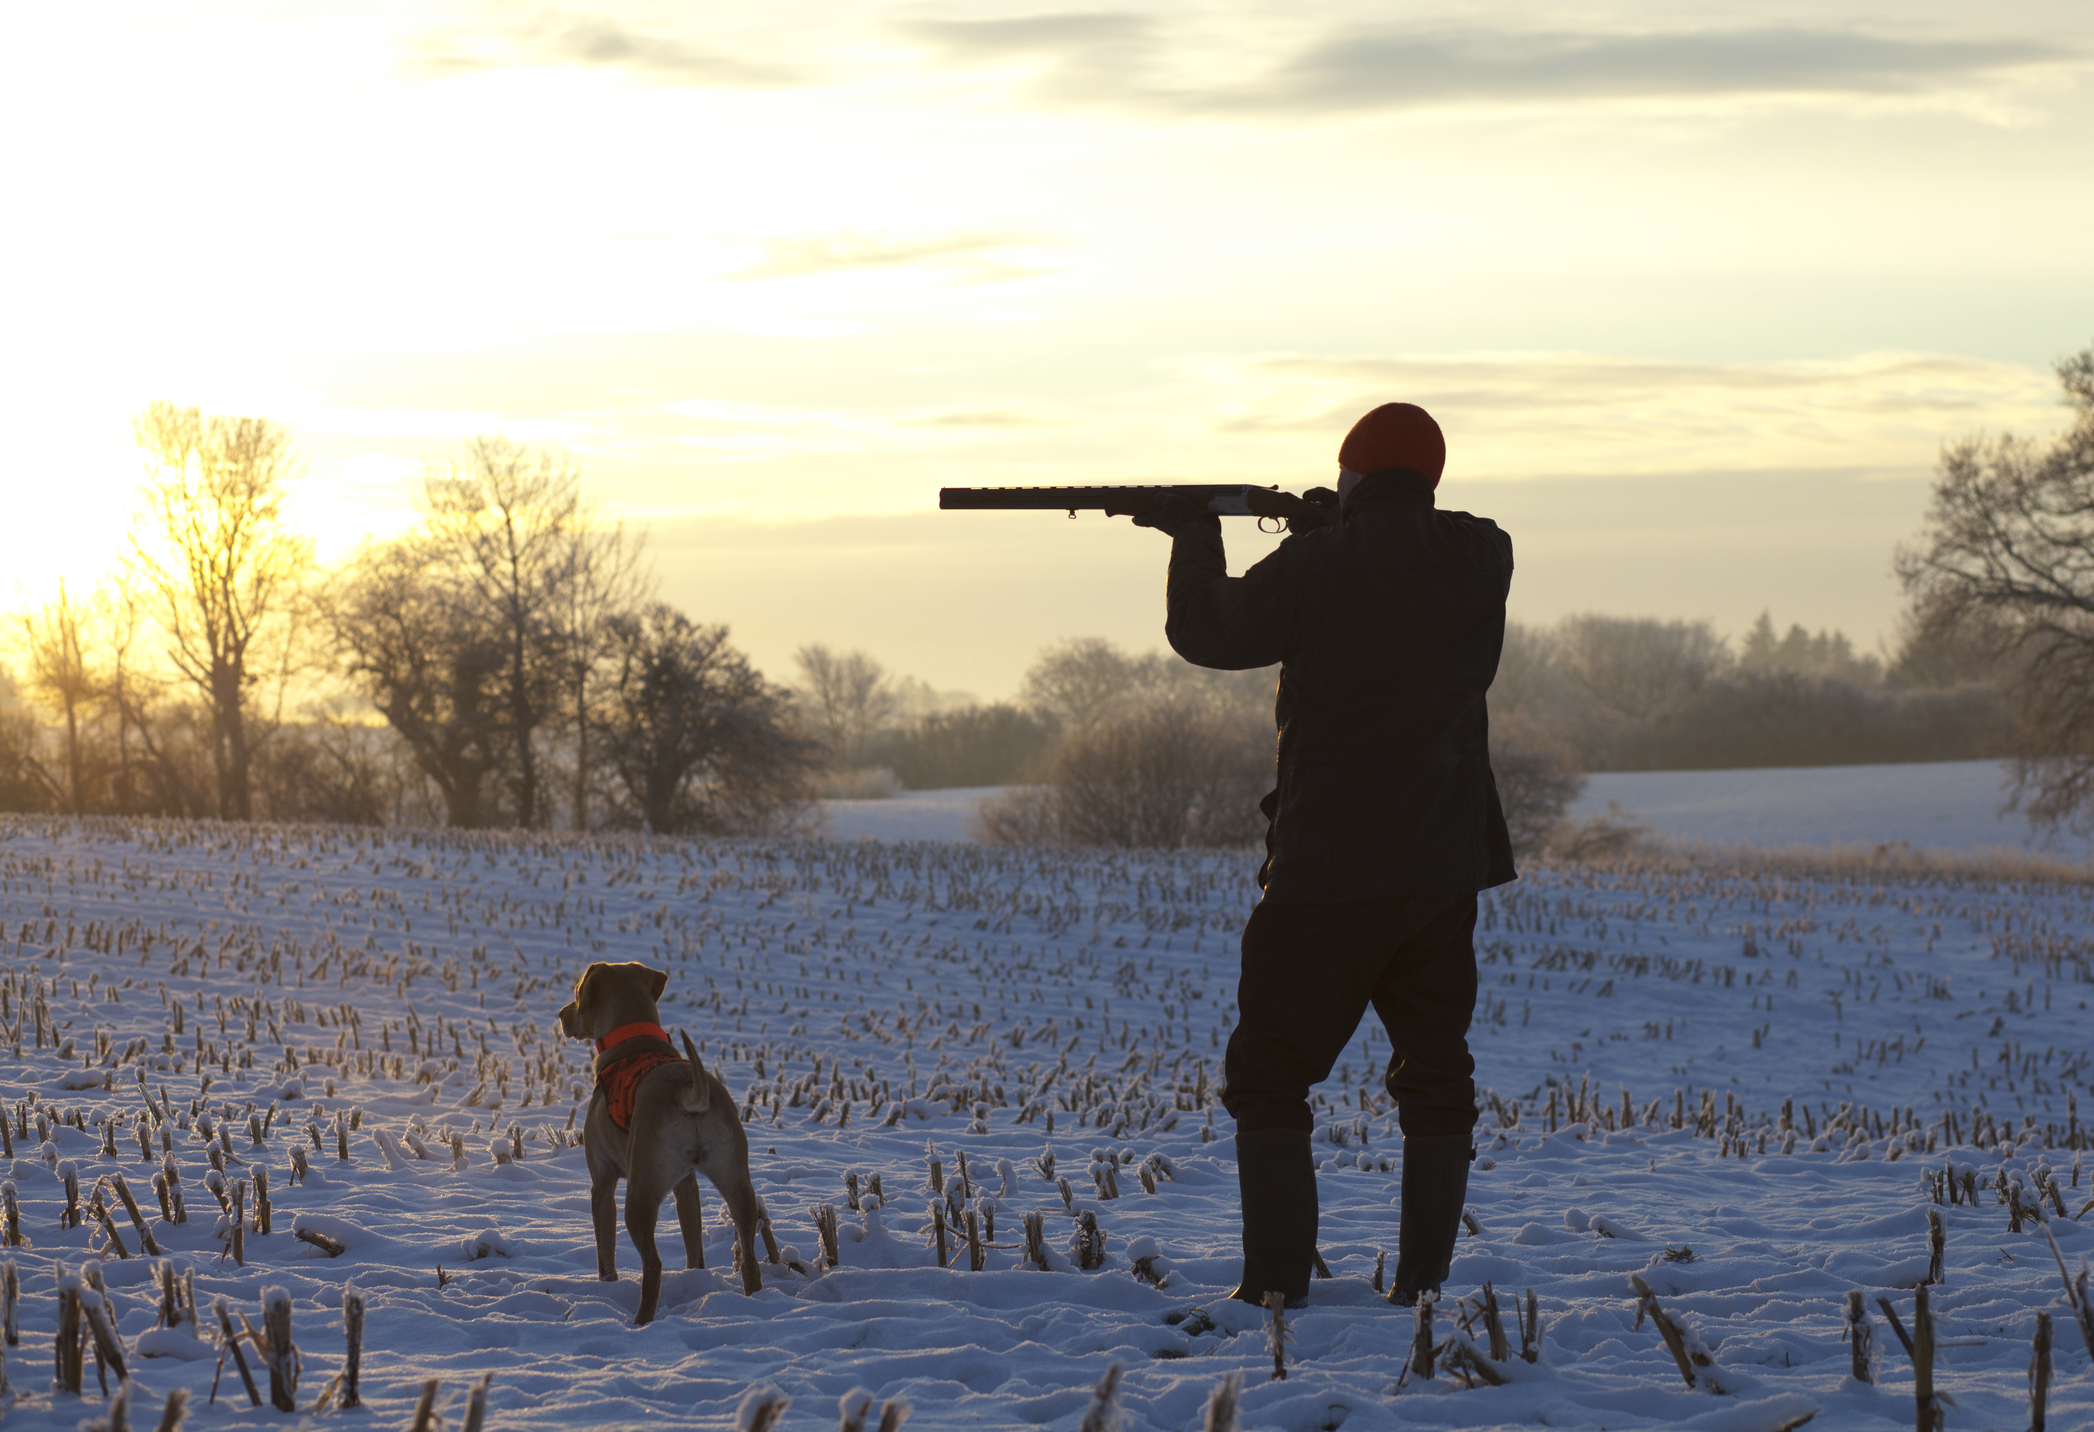 The Best Base Layers for Cold Weather Hunting - Staying warm doesn't have to be a chore: with the right base layer, you can move freely without feeling bogged down by weight.